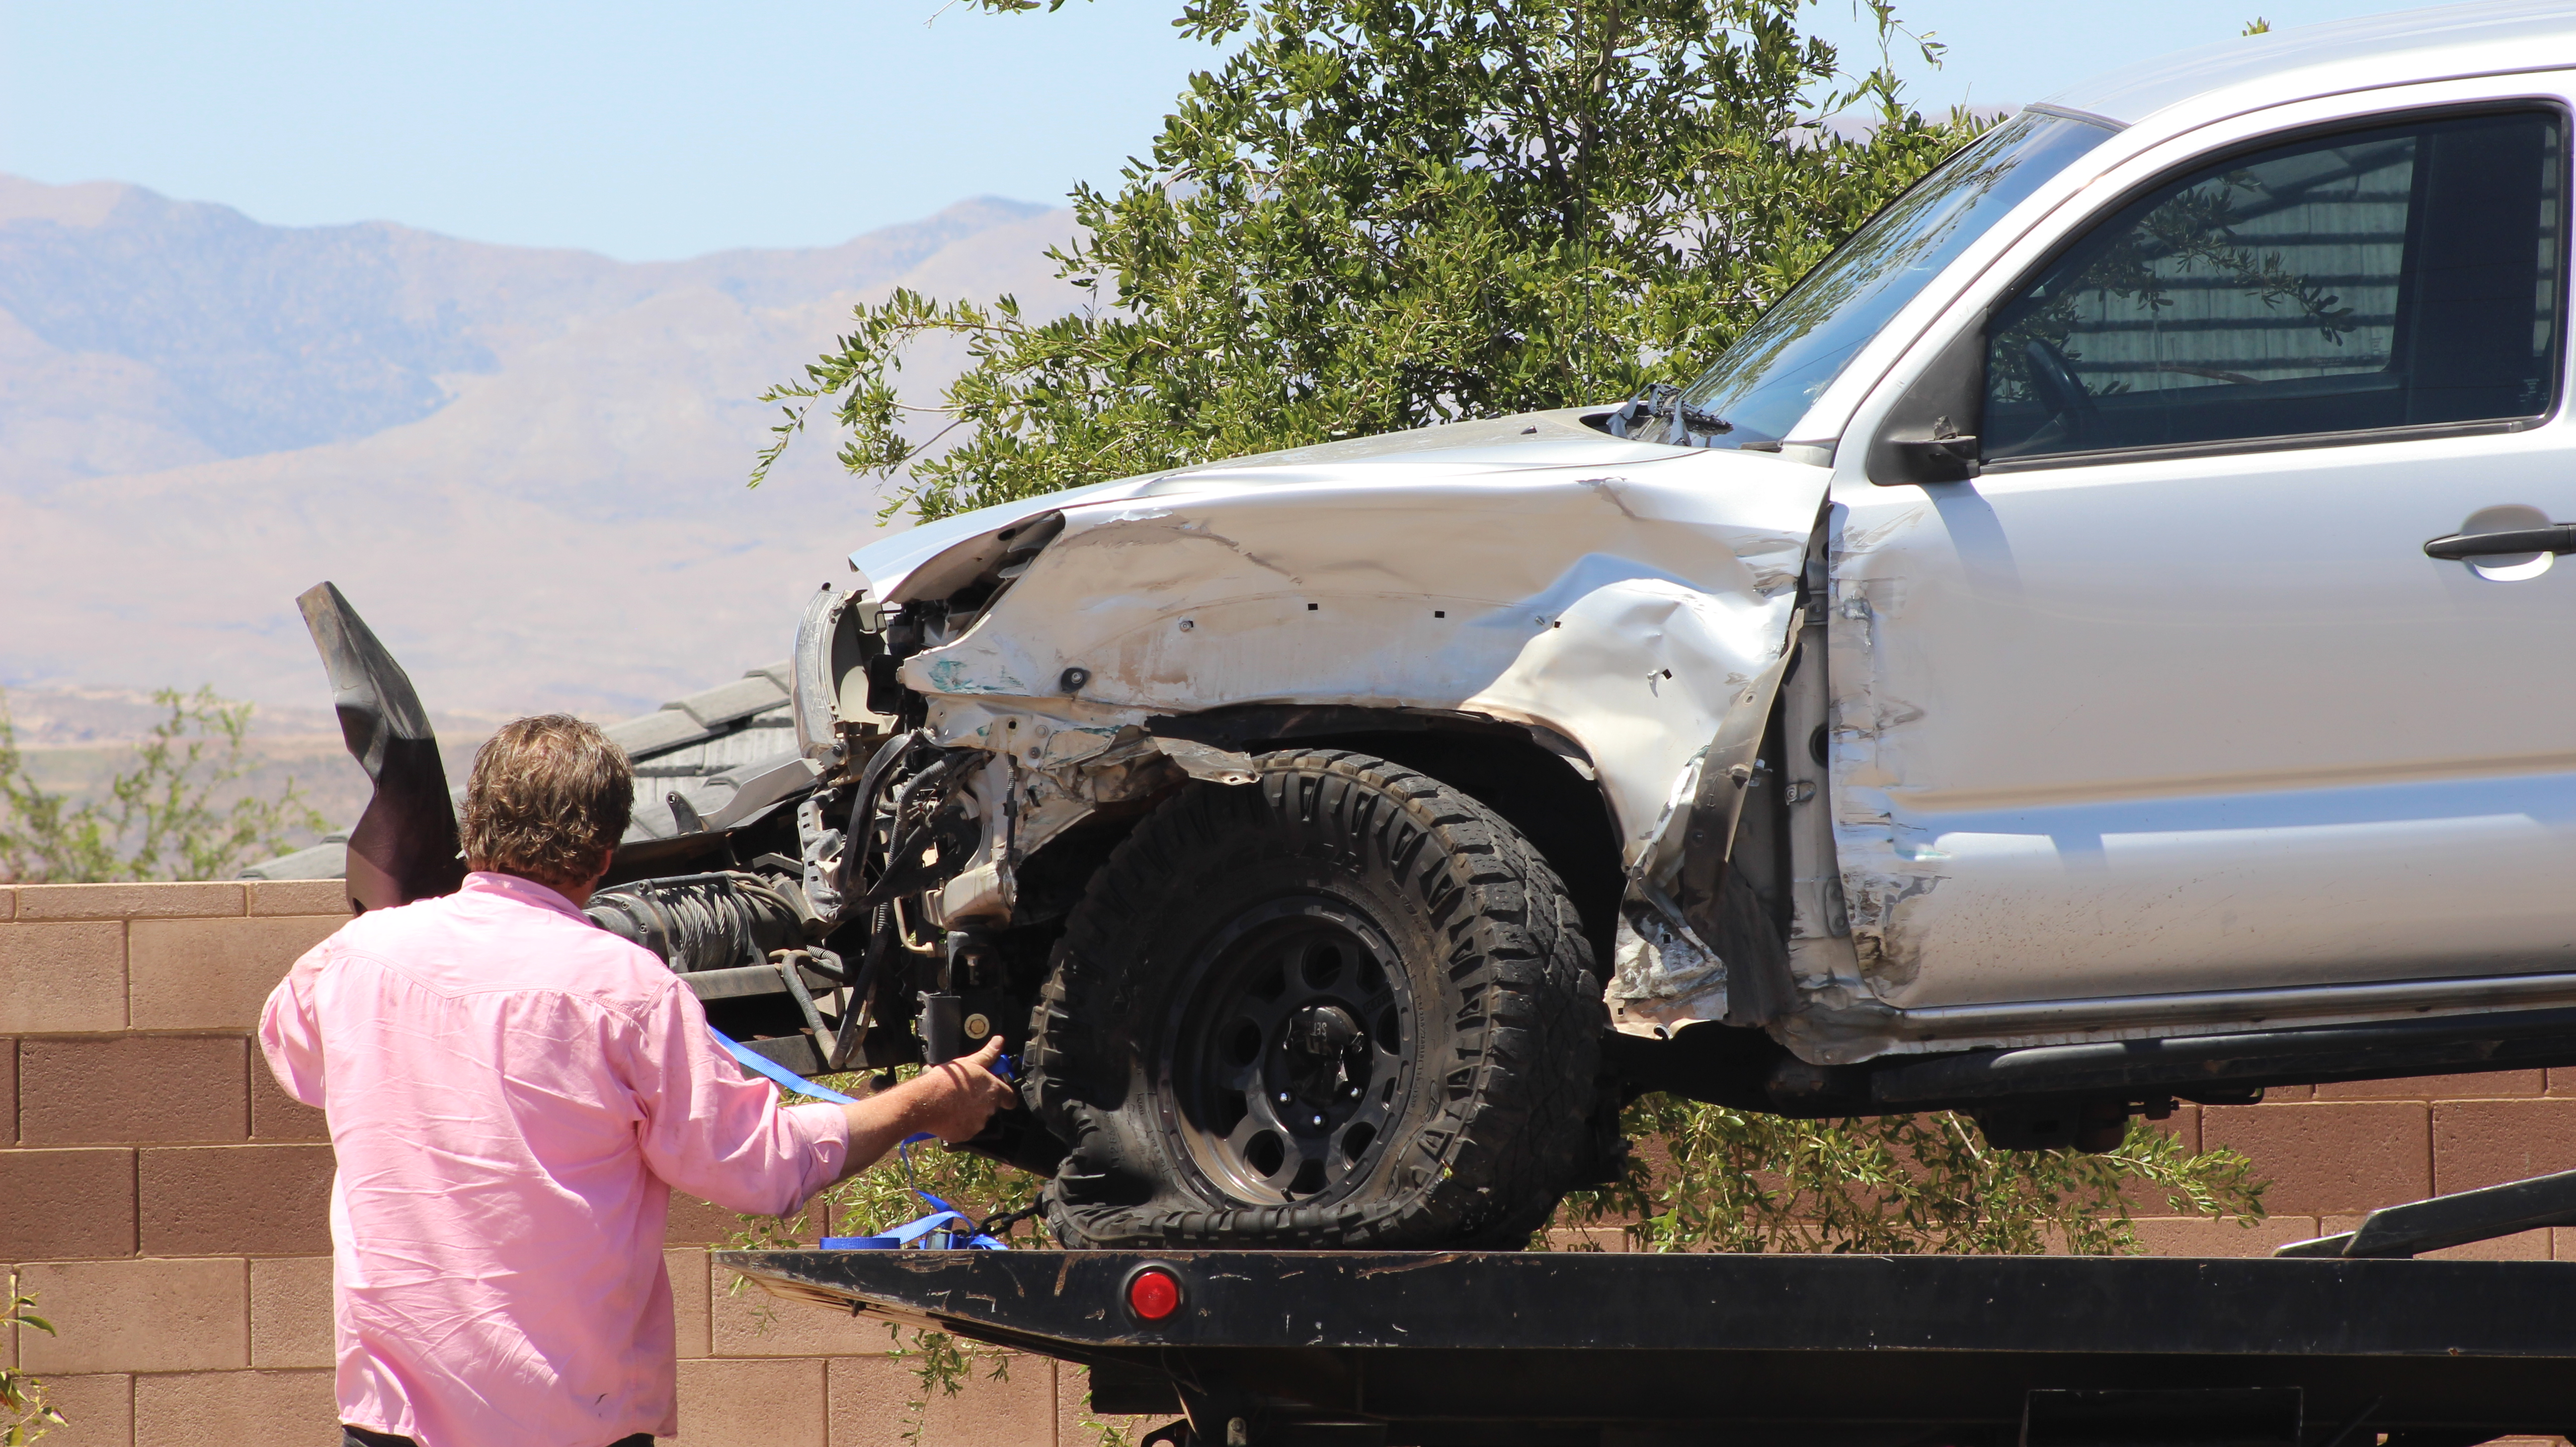 A collision between two trucks on 3000 E. left both vehicles badly damaged. The driver of the Toyota was cited for improper lane change, St. George, Utah, July 20, 2016 |Photo by Don Gilman, St George News